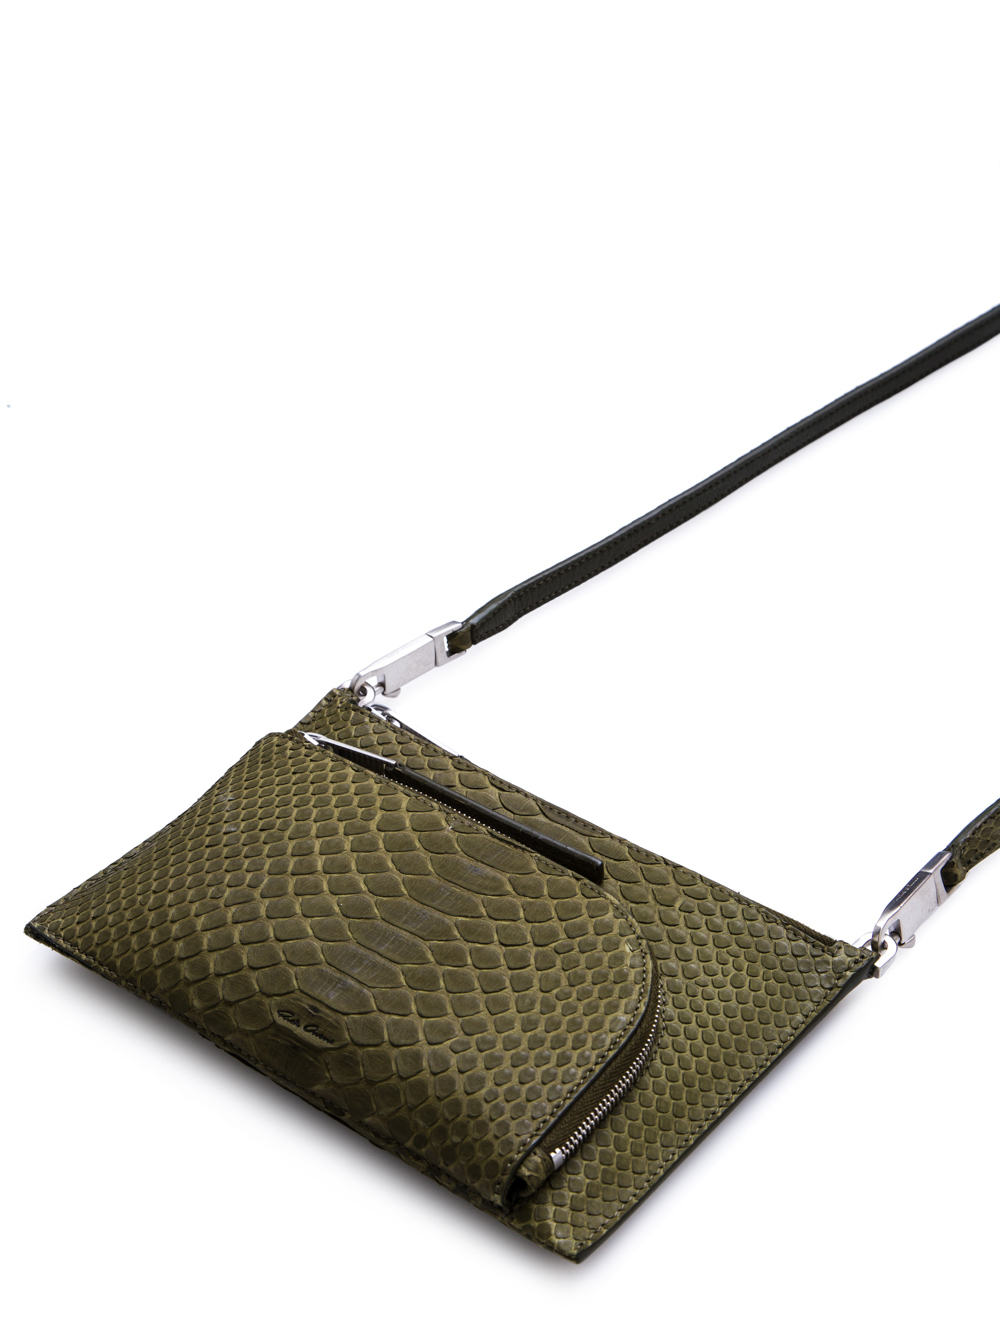 RICK OWENS FW18 SISYPHUS CLUB POUCH IN DIRTY GREEN PYTHON LEATHER